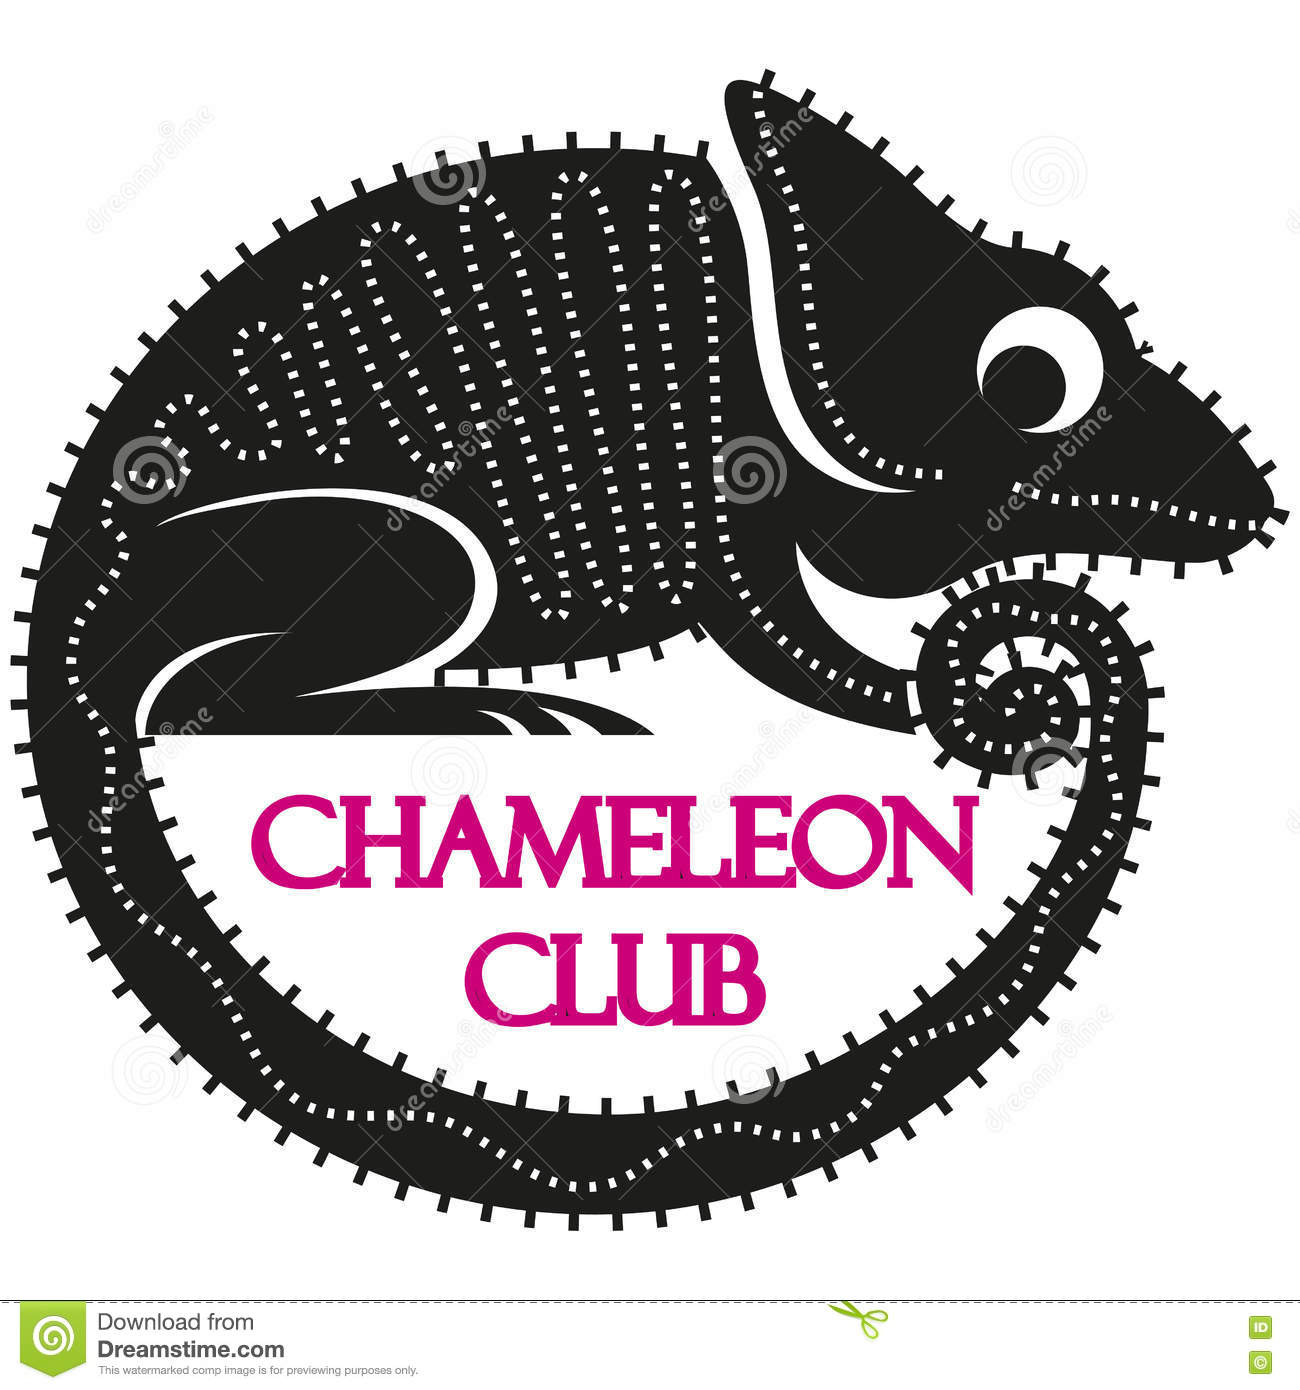 Funny black cartoon chameleon logo.